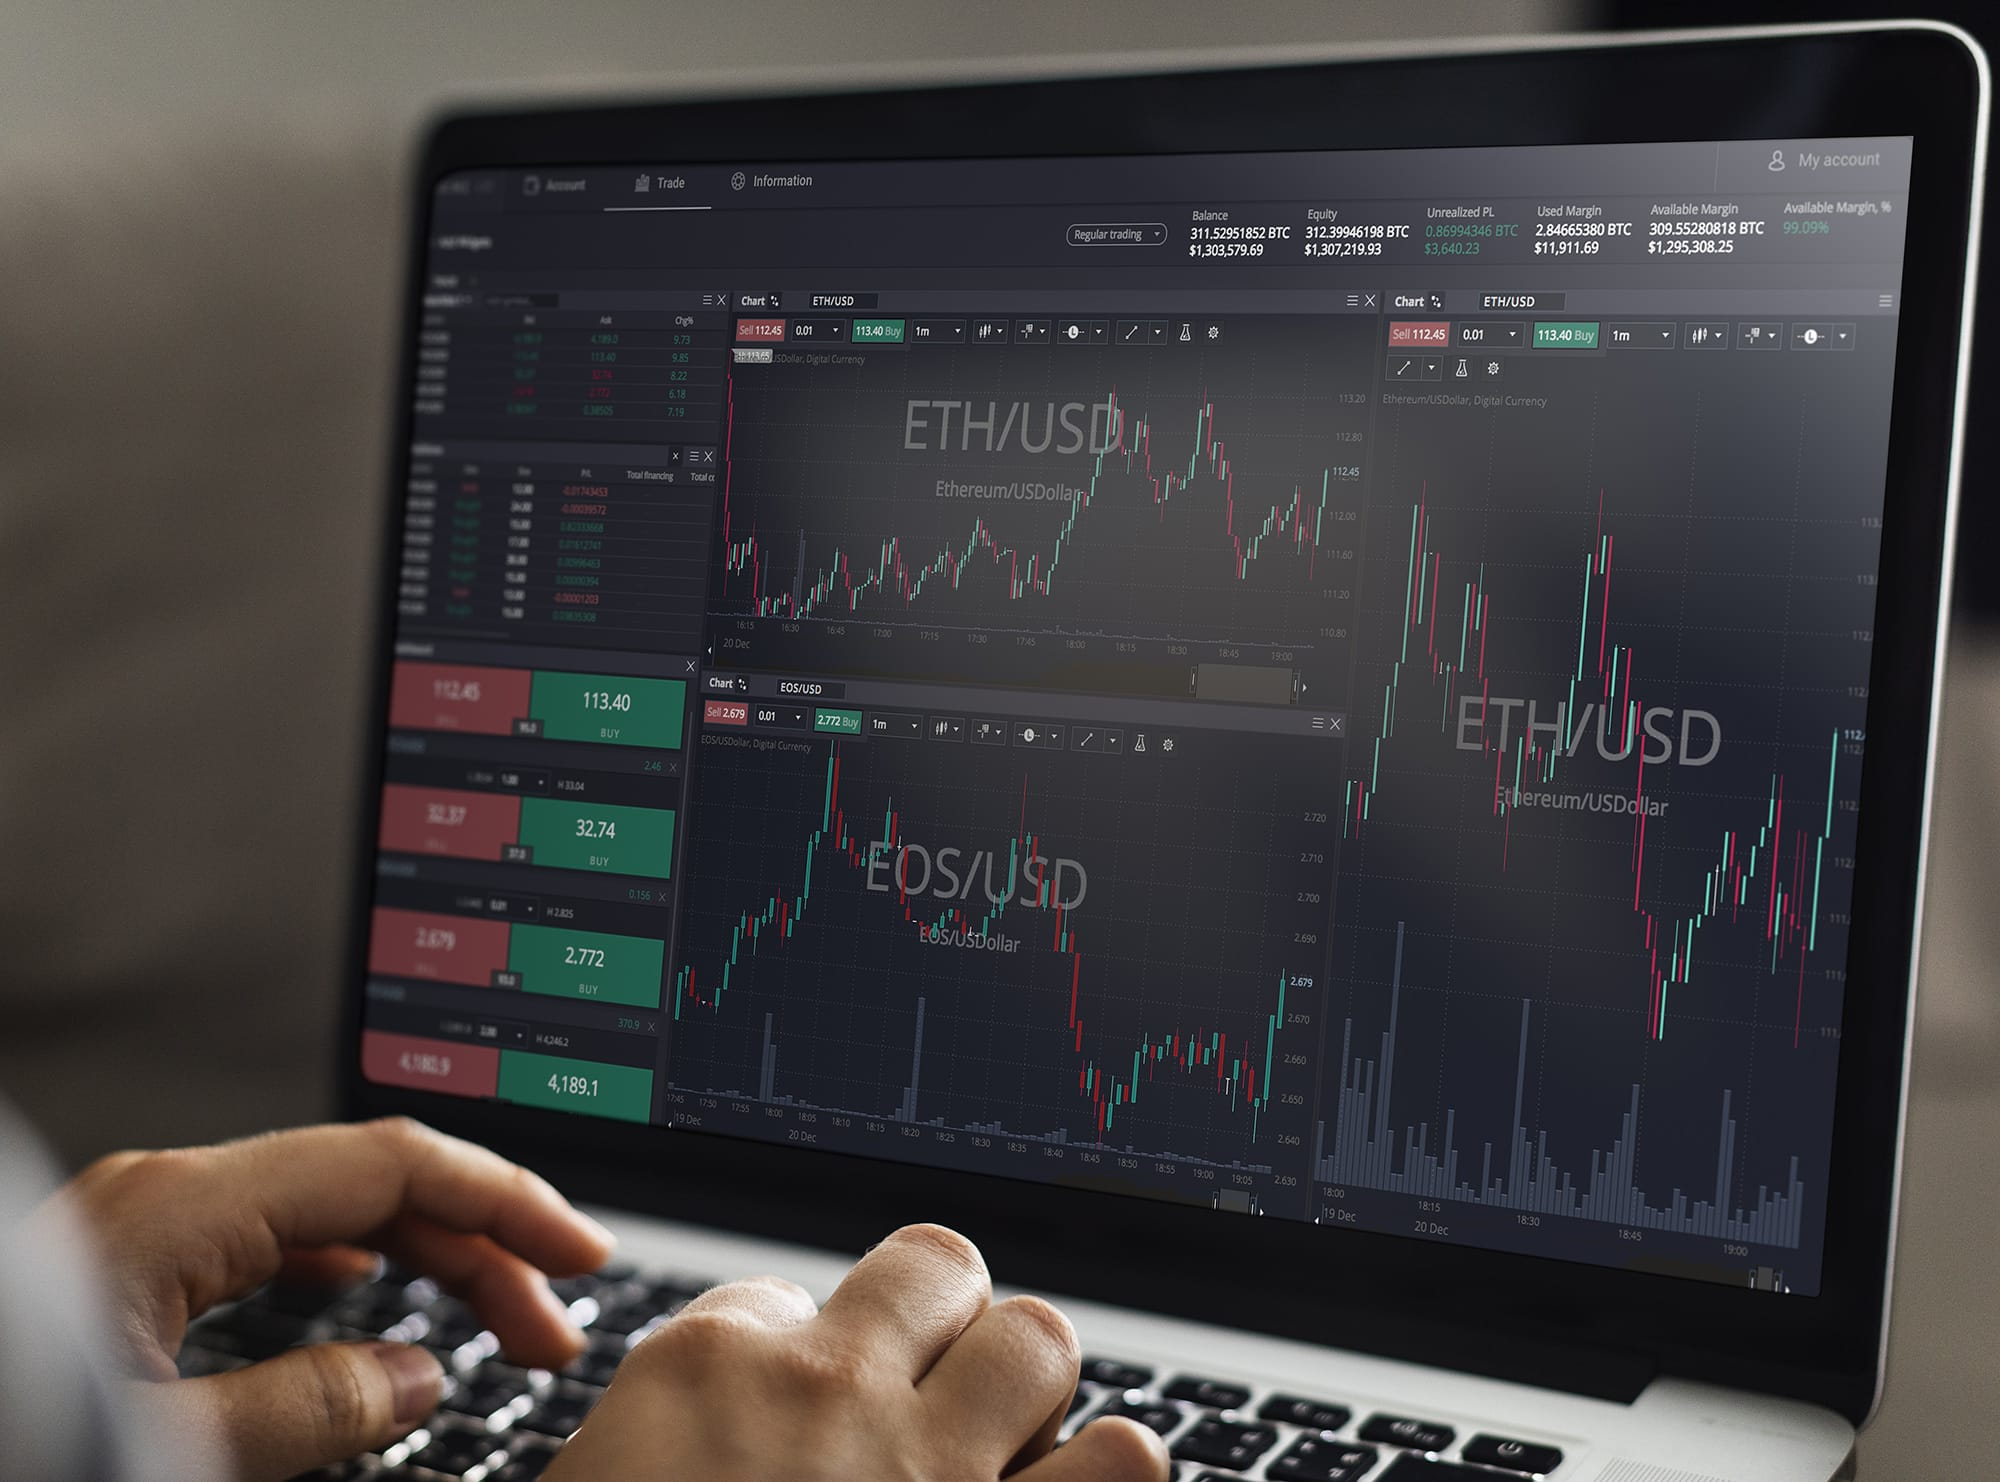 Make money trading Altcoins – How to trade Altcoins